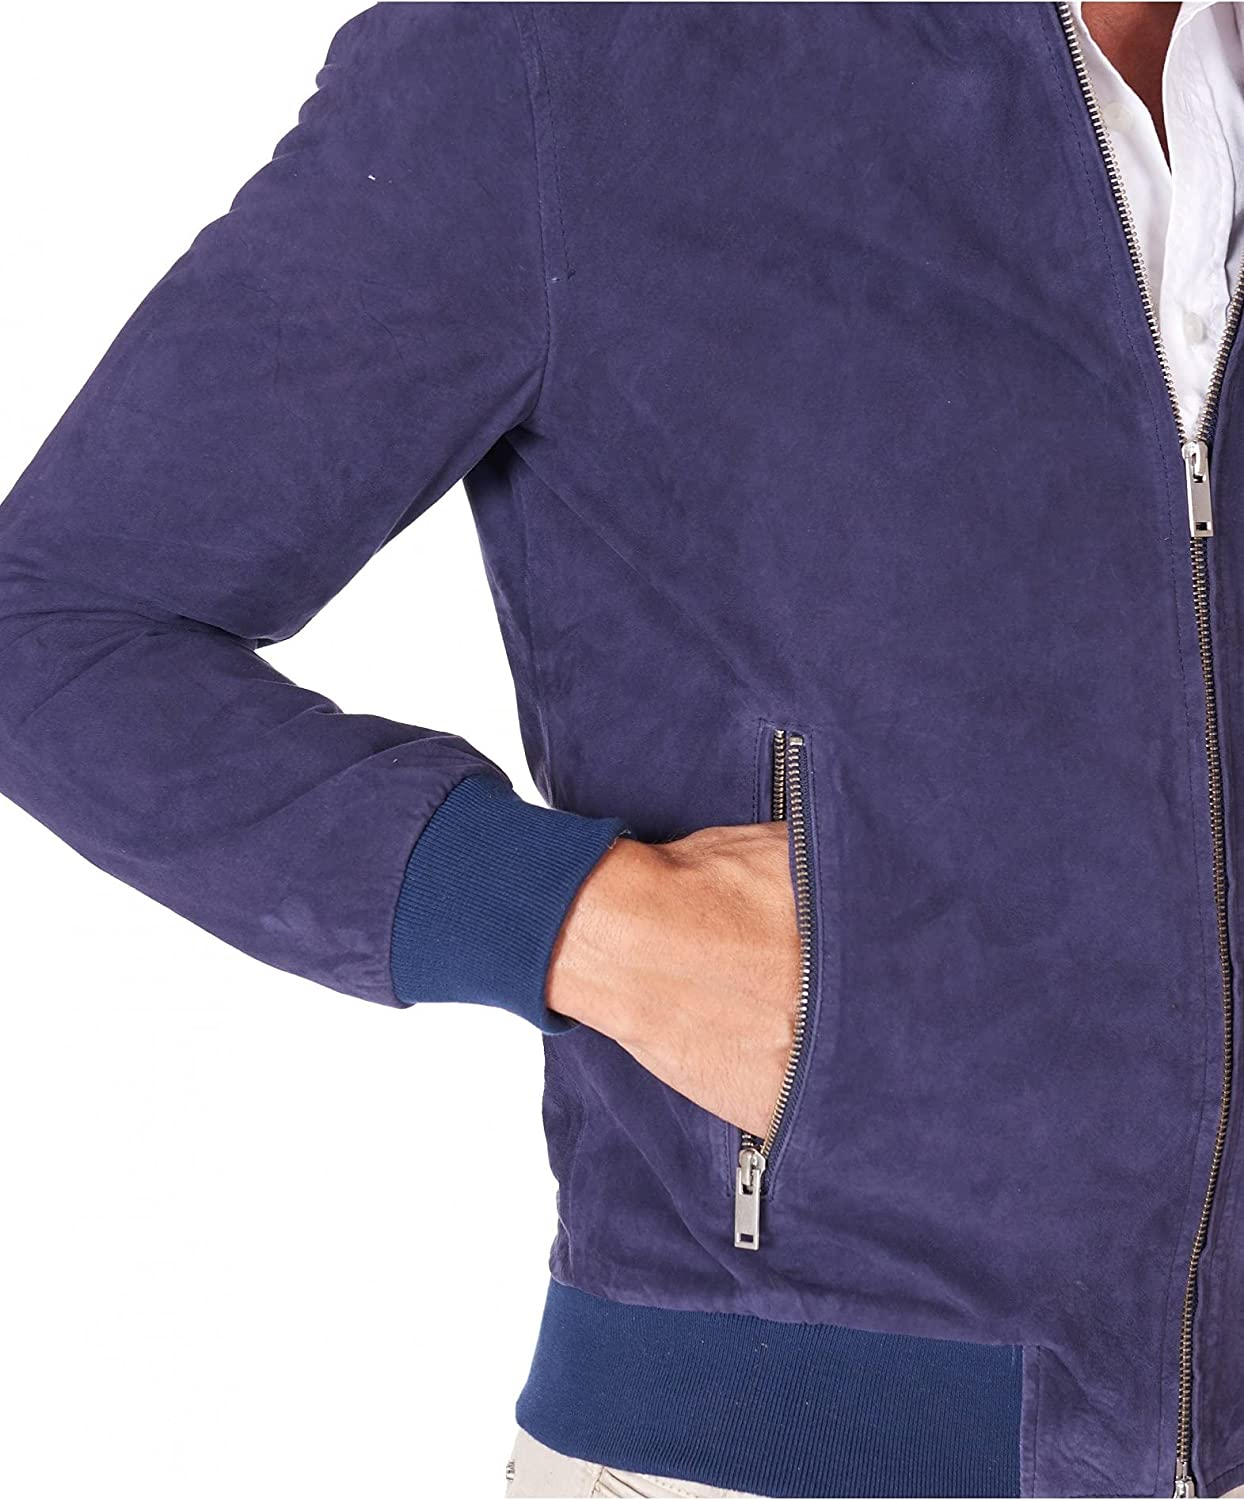 Blue suede leather bomber jacket two pockets